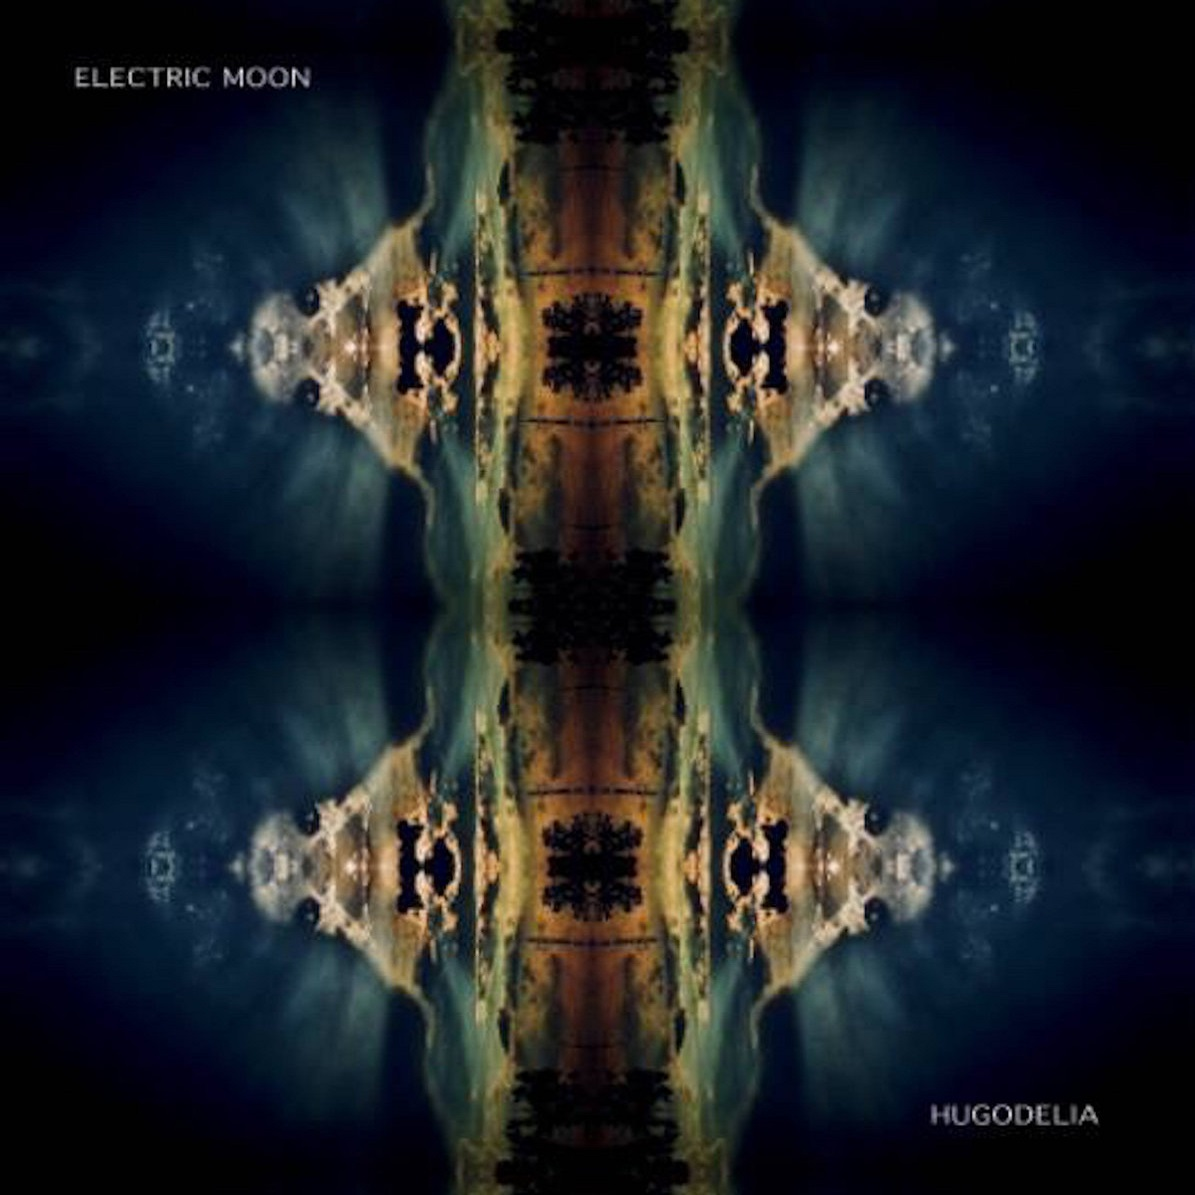 electric moon hugodelia